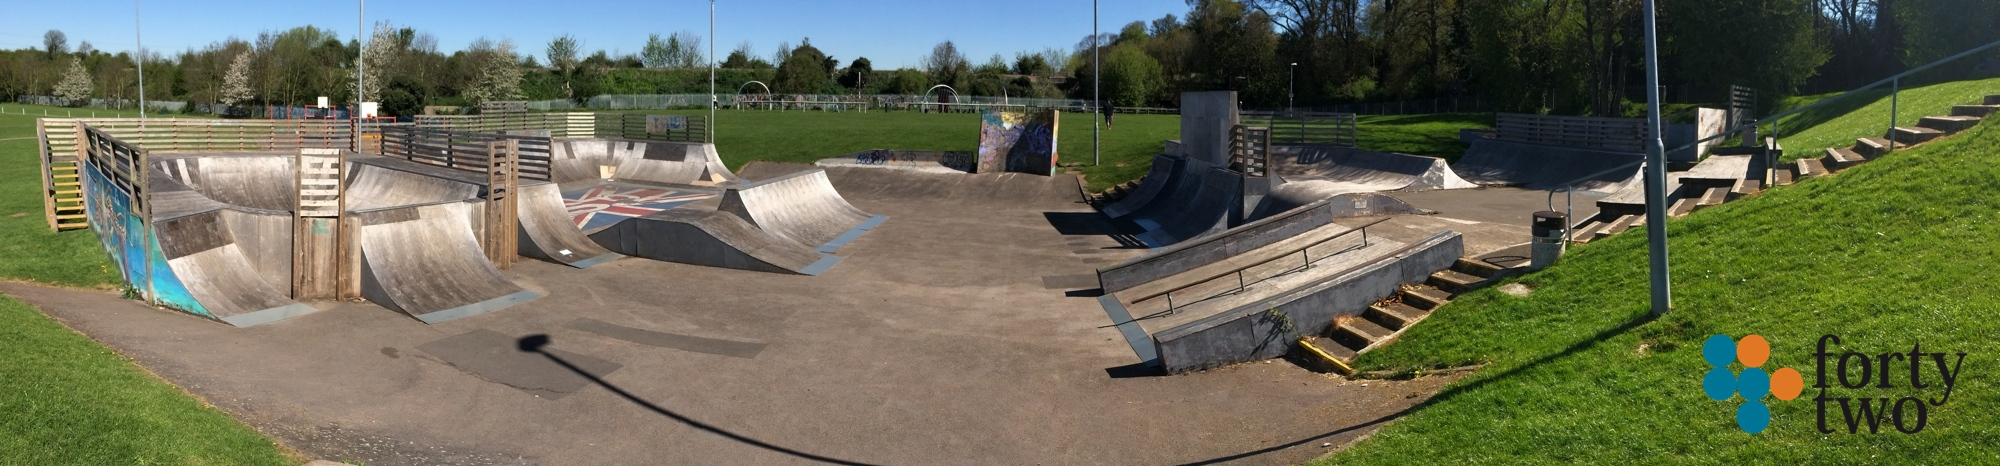 Radcliffe on Trent skatepark view two